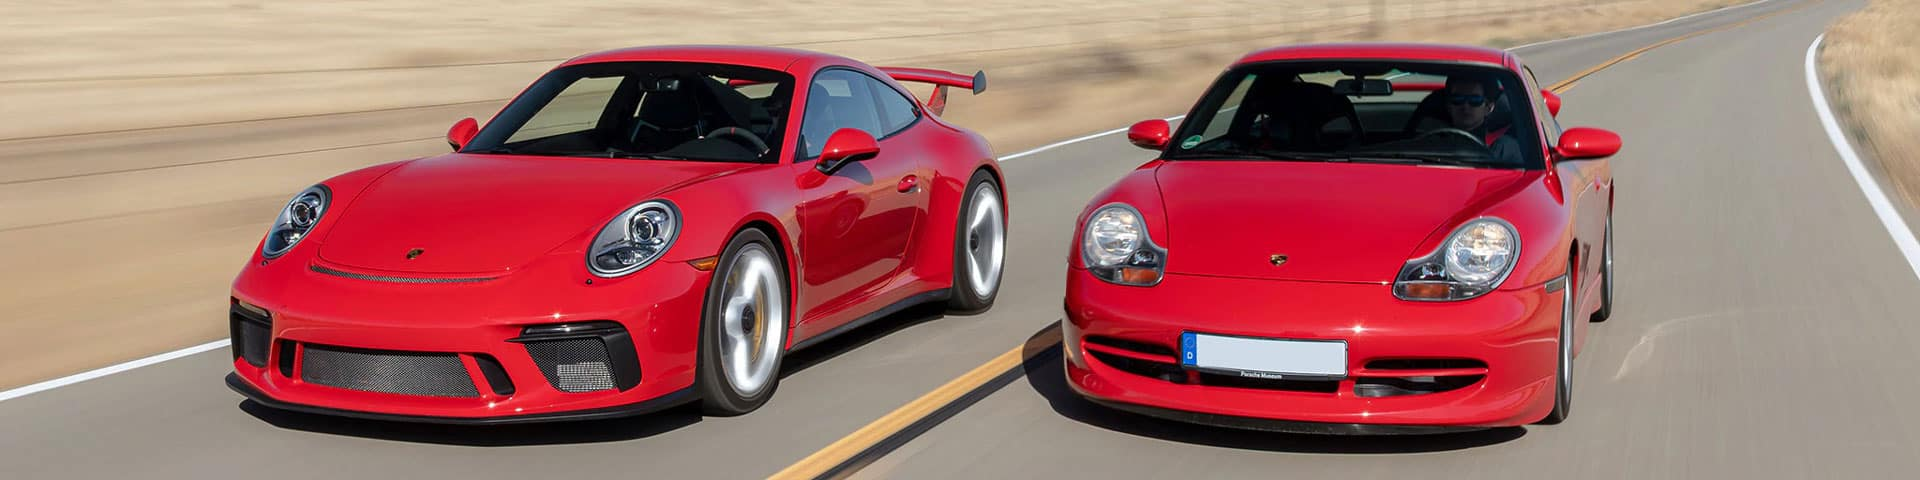 Evolution of the 911 GT3